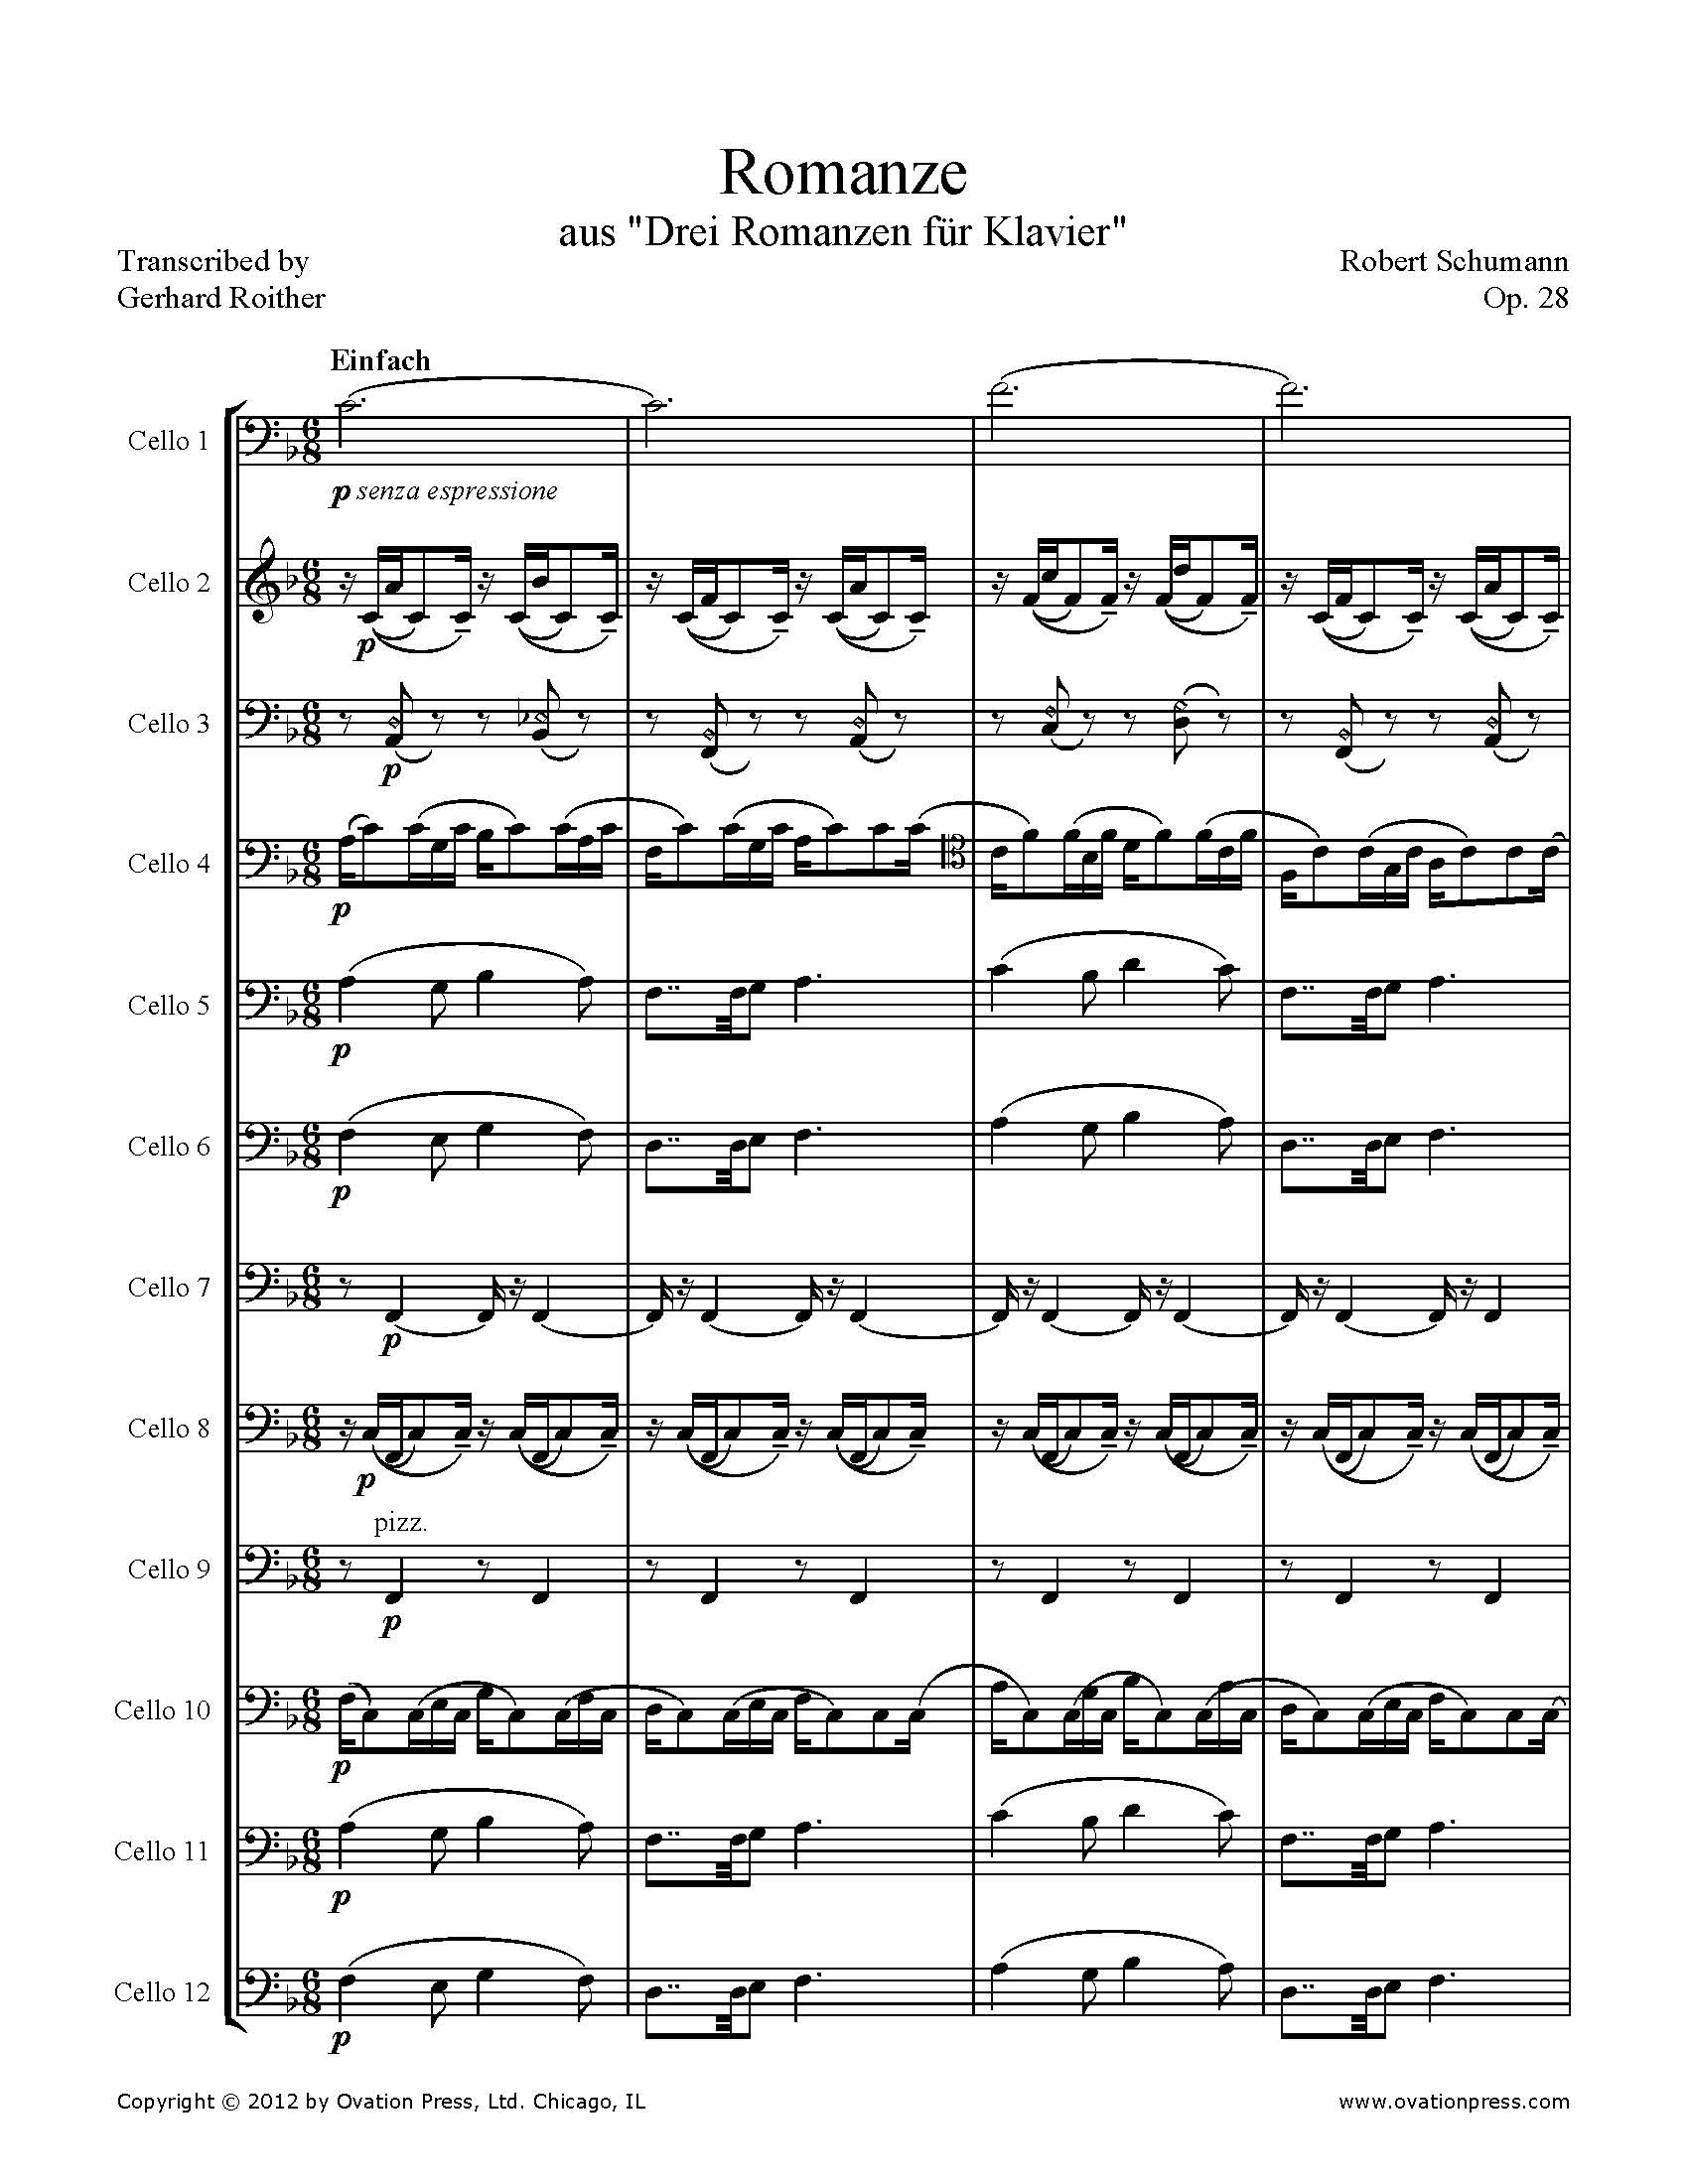 Schumann Romanze Arranged for 12 Celli